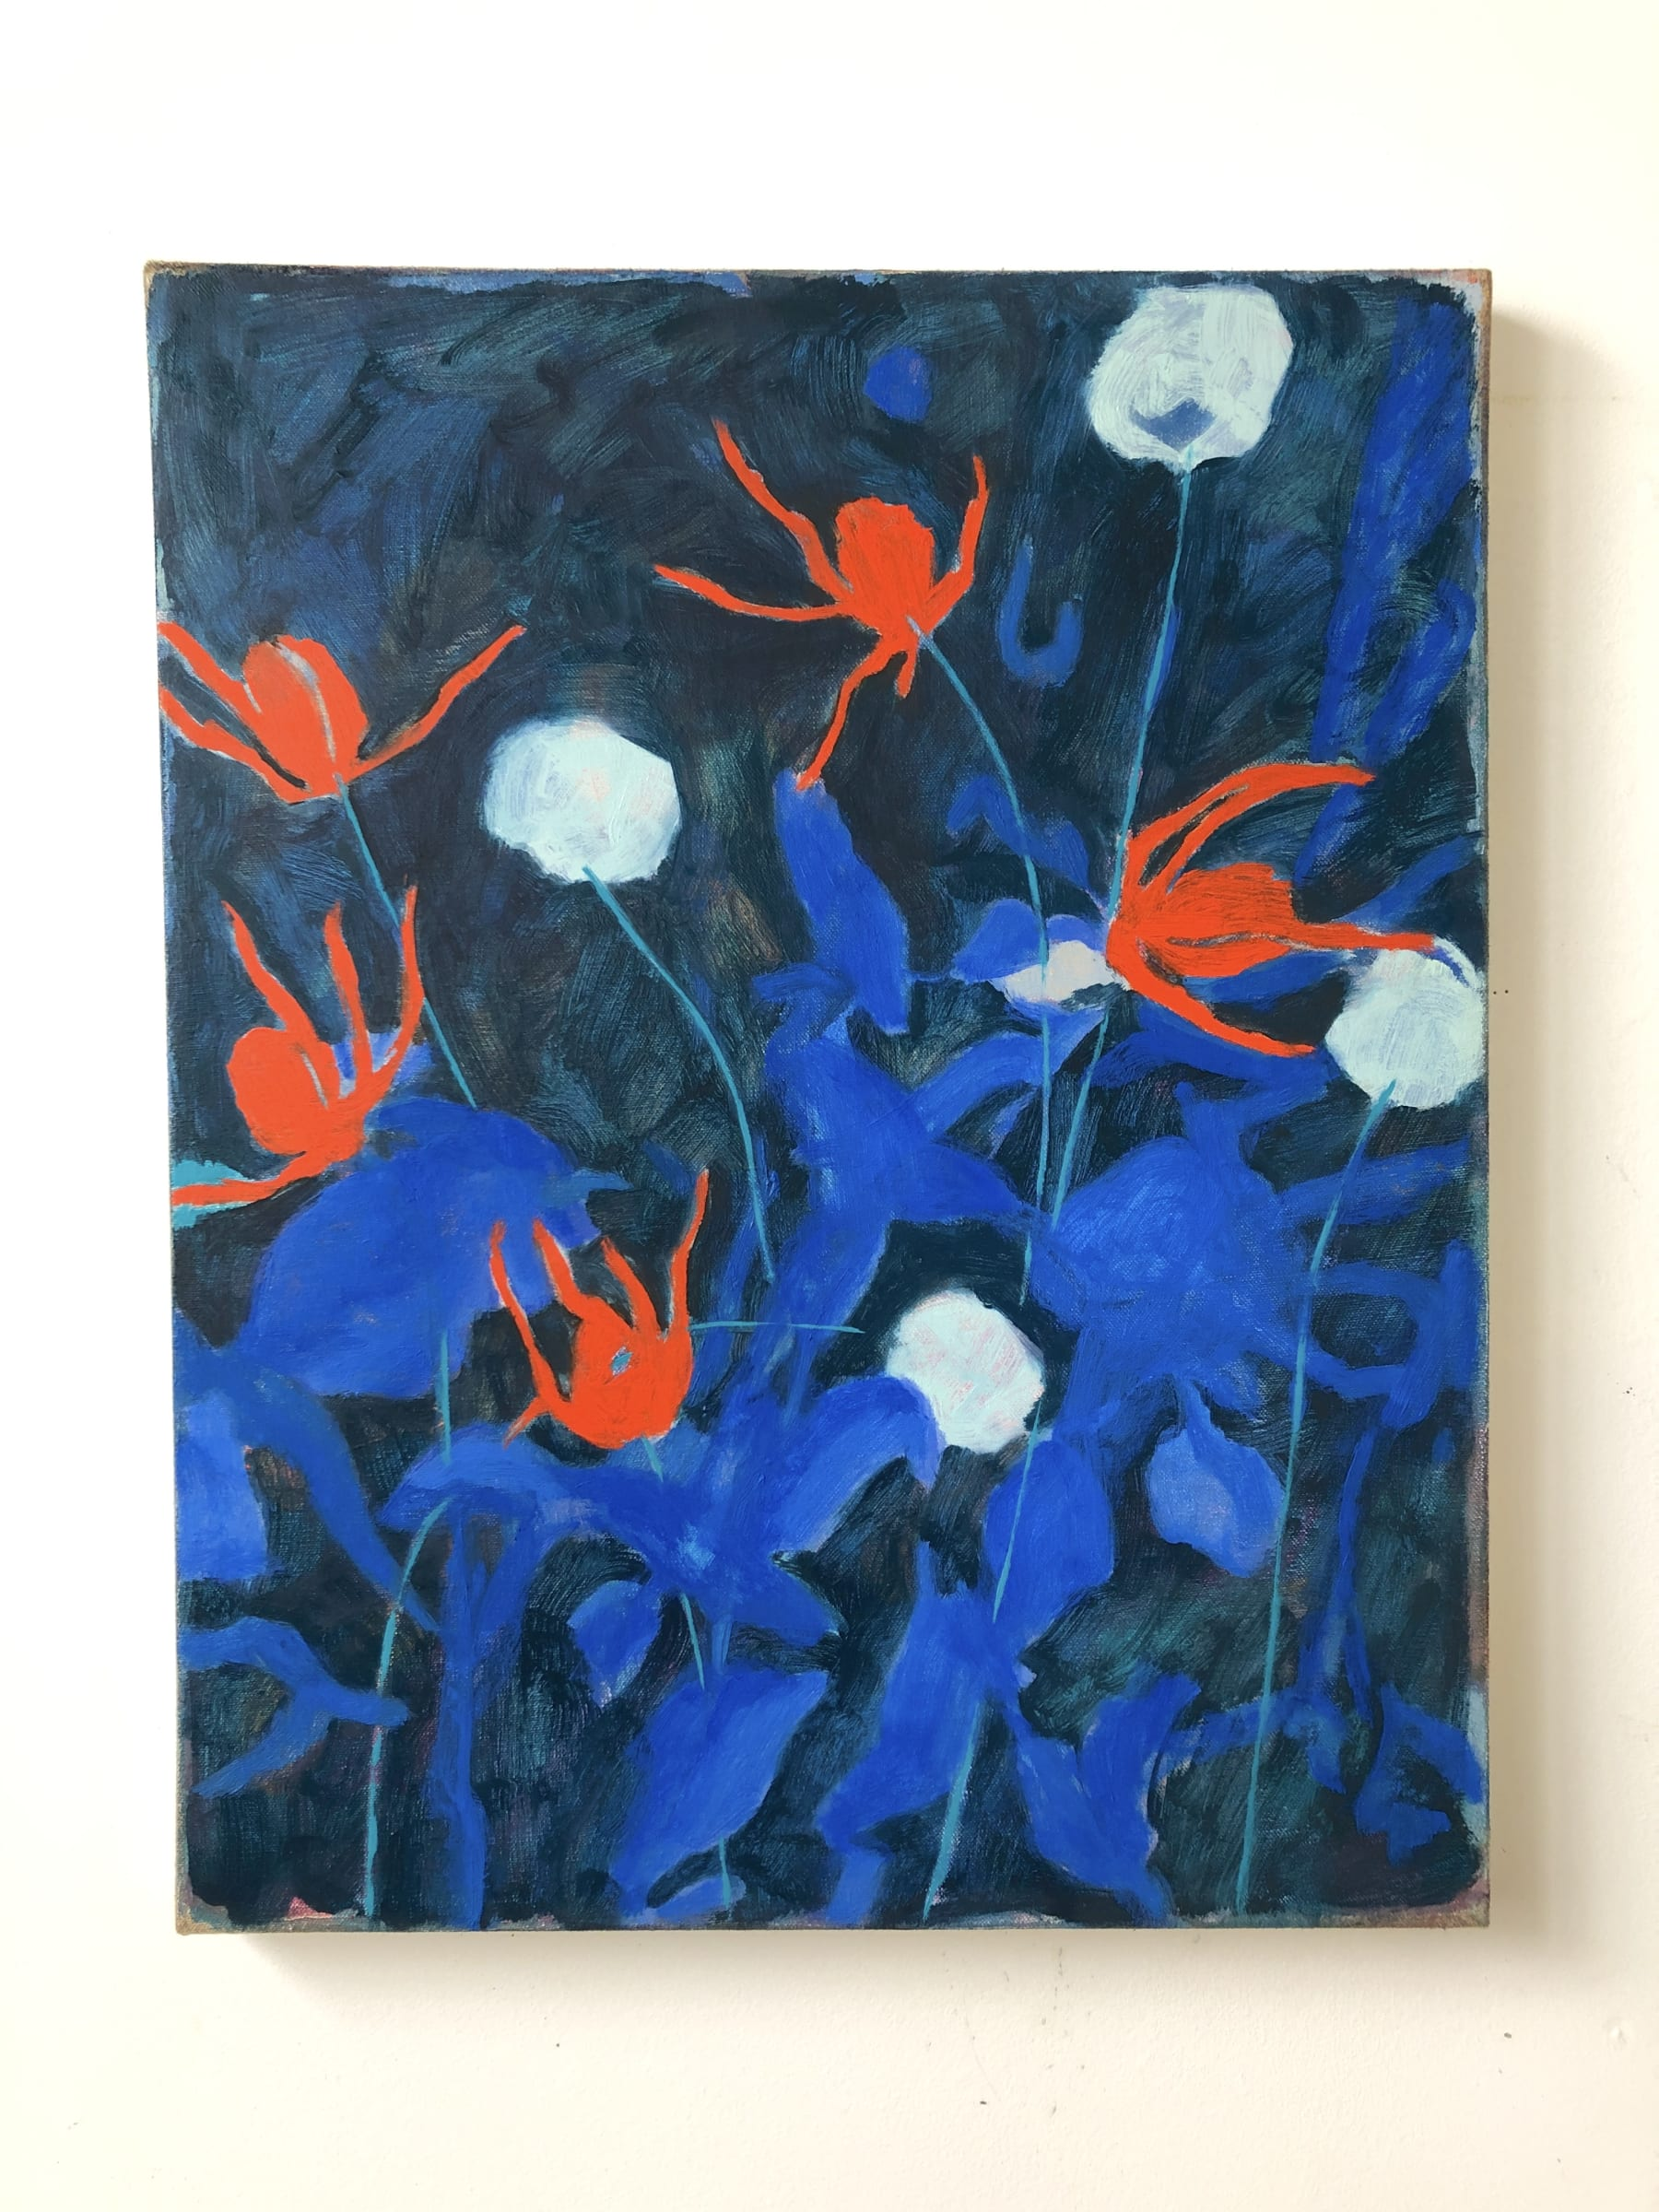 "<span class=""link fancybox-details-link""><a href=""/artists/28-rebekah-callaghan/works/953-rebekah-callaghan-globe-thistle/"">View Detail Page</a></span><div class=""artist""><strong>Rebekah Callaghan</strong></div> <div class=""title""><em>Globe Thistle</em></div> <div class=""medium"">Oil on canvas</div> <div class=""dimensions"">20 x 16 inches</div>"